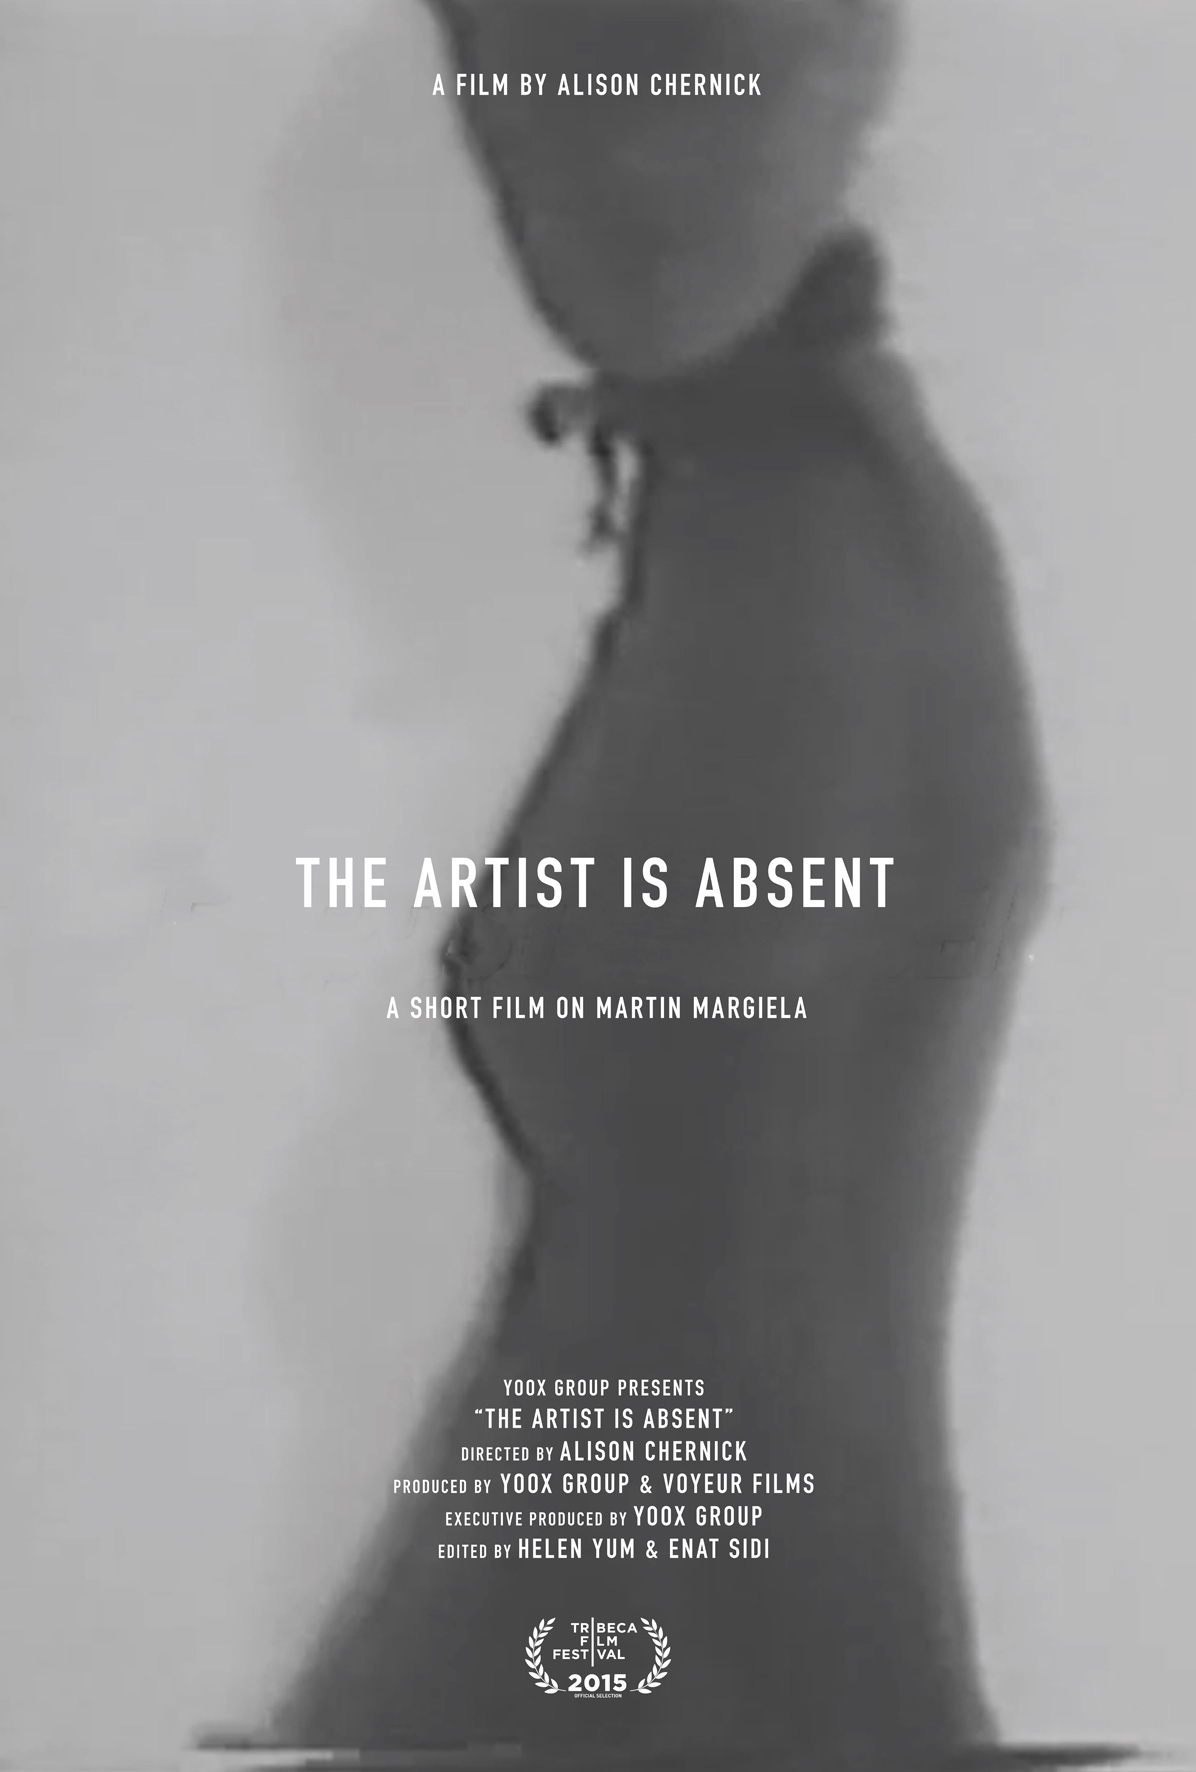 YOOX Group presents The Artist is Absent (1)